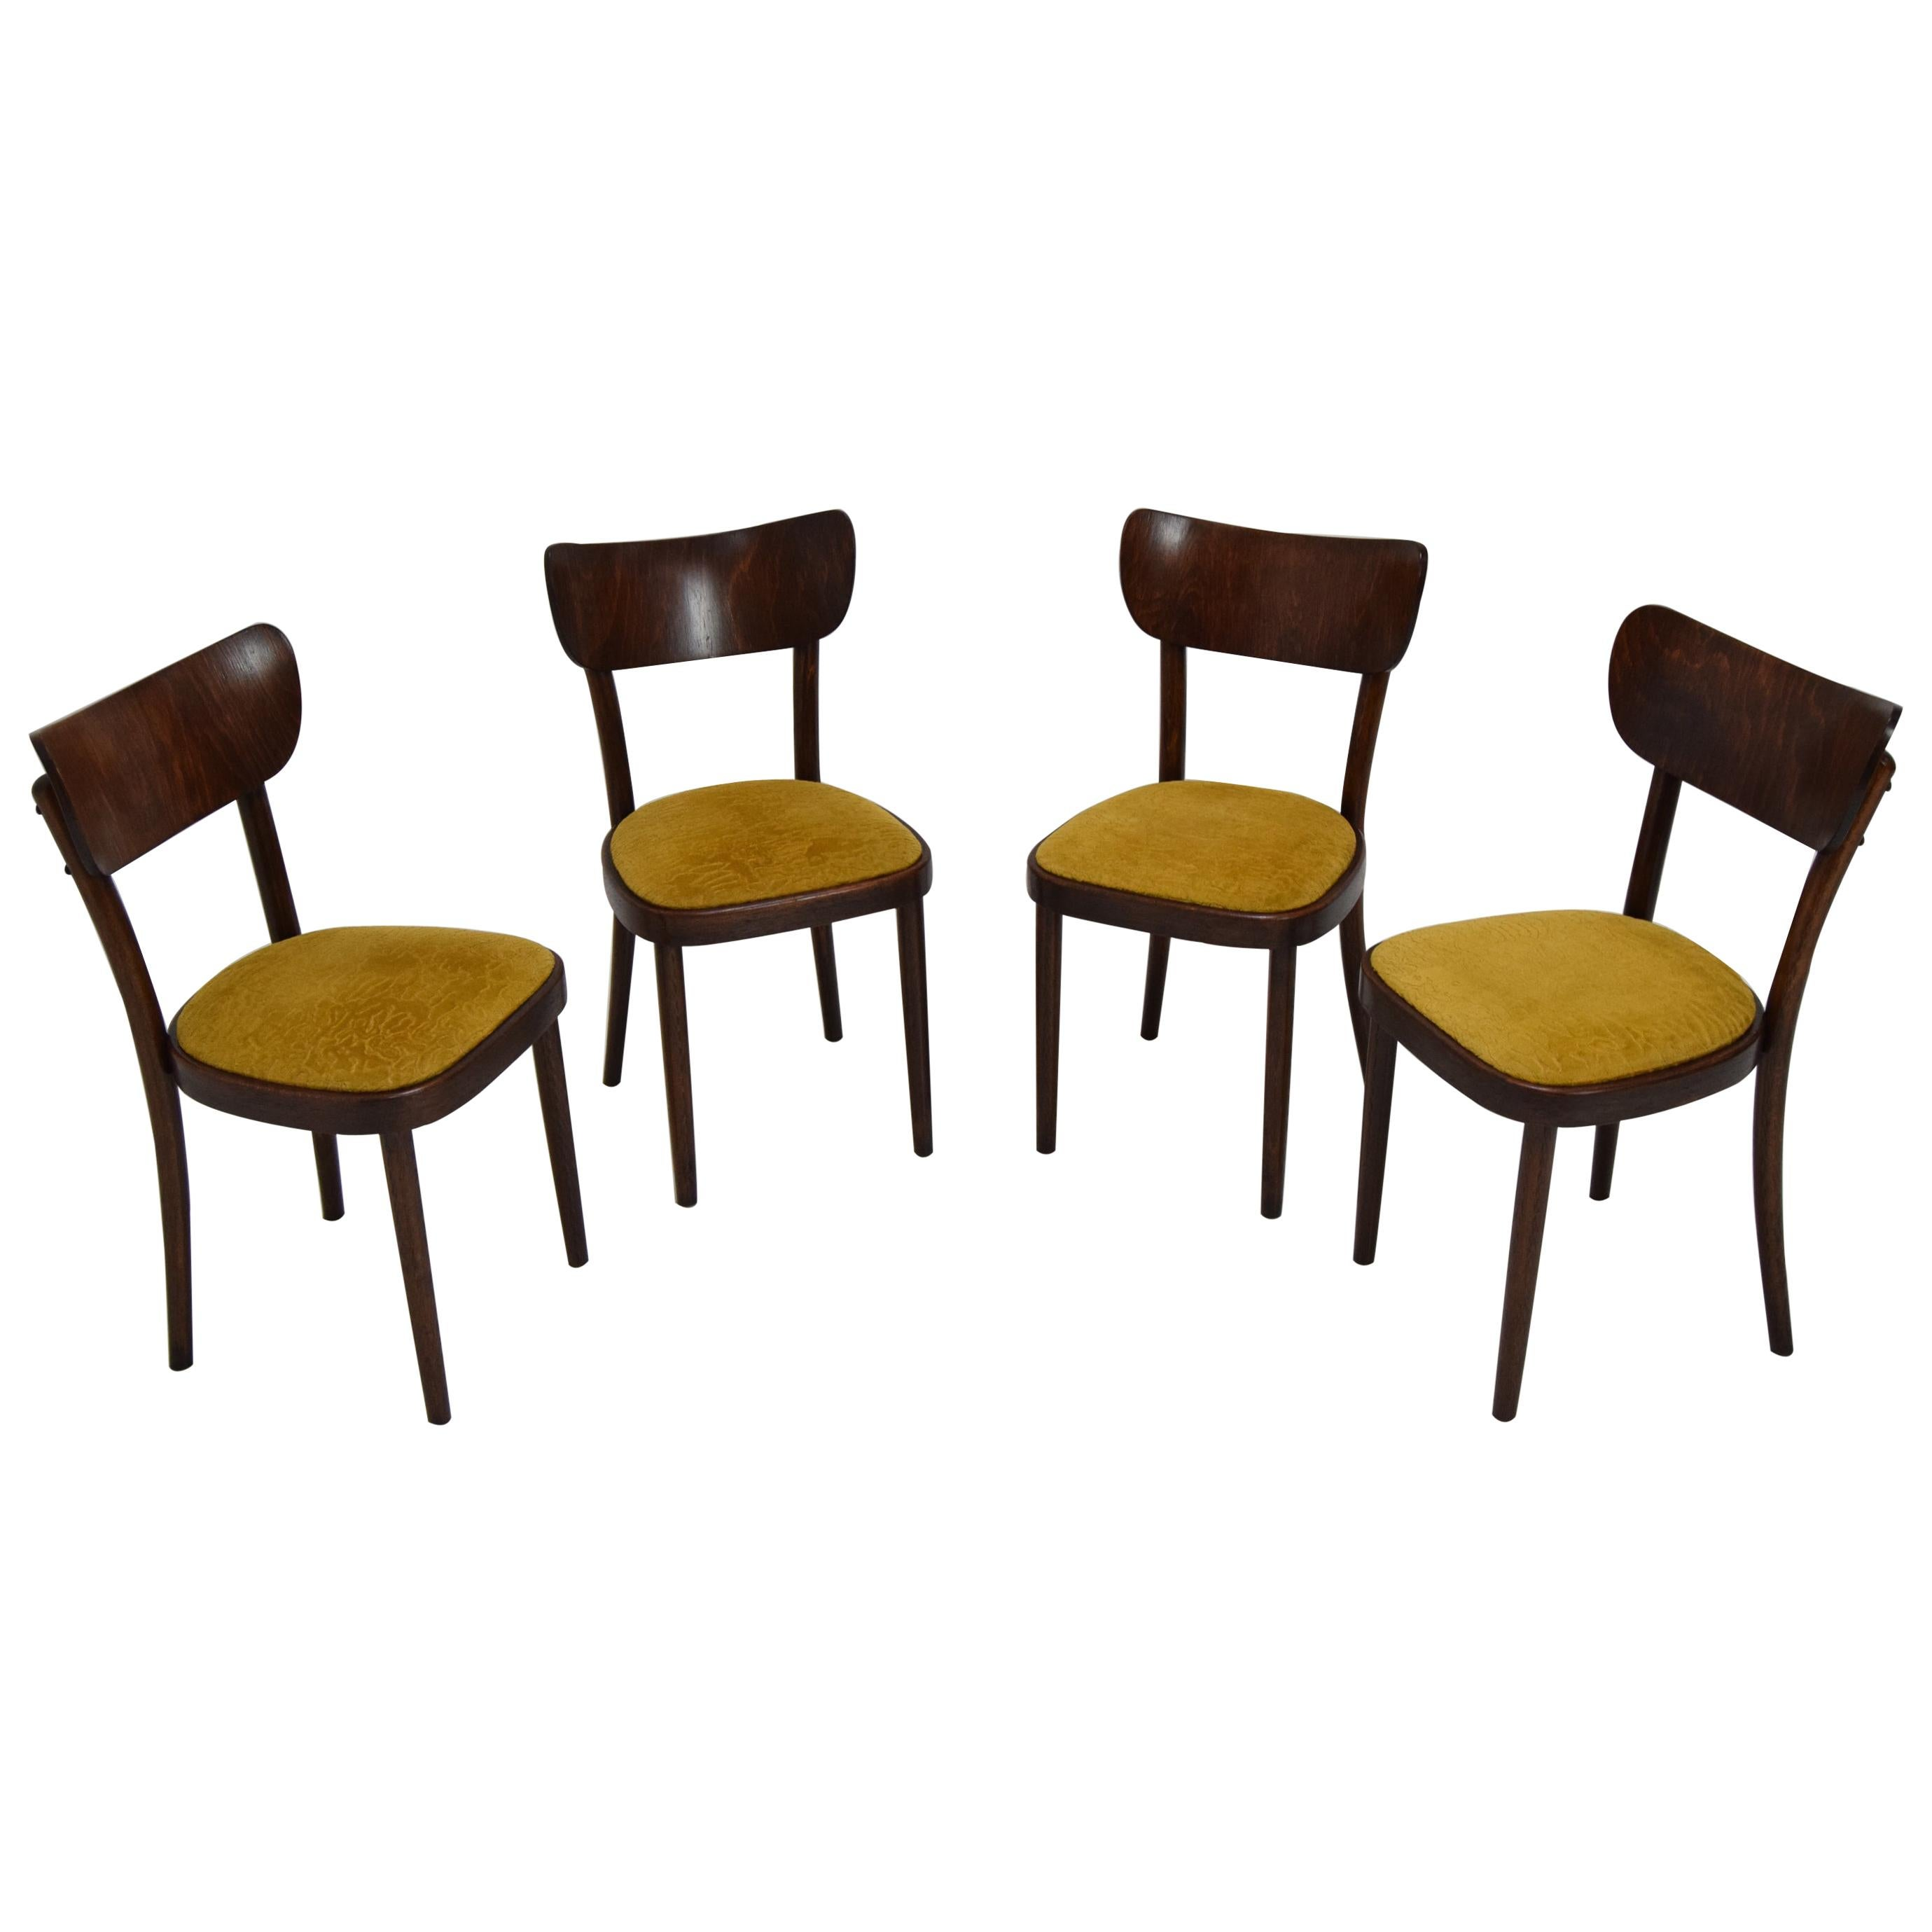 Midcentury Set of Four Chairs or Ton, 1960s